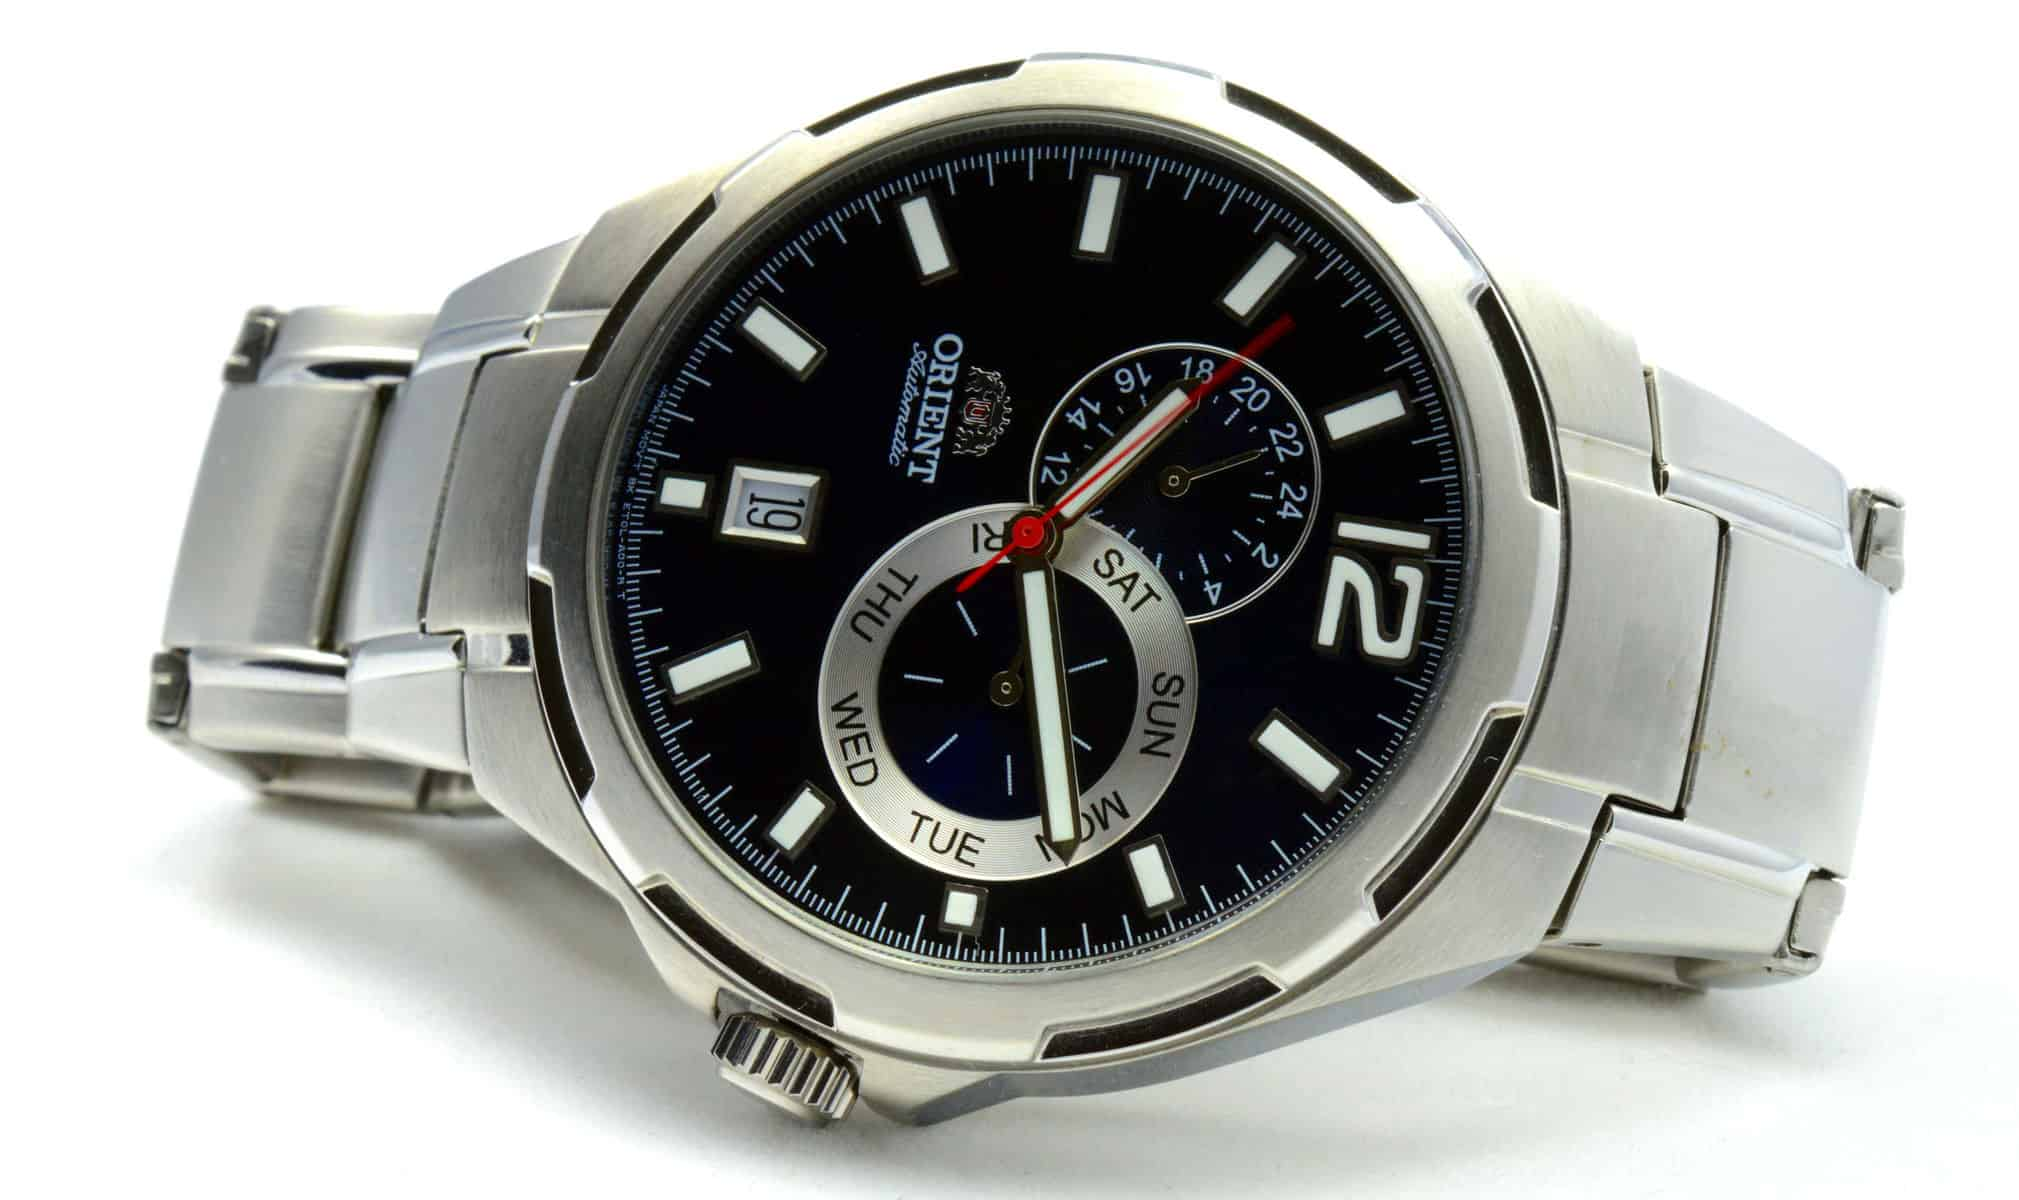 angle diver serious the six watches strong next watch threee iwc aquatimer for timers